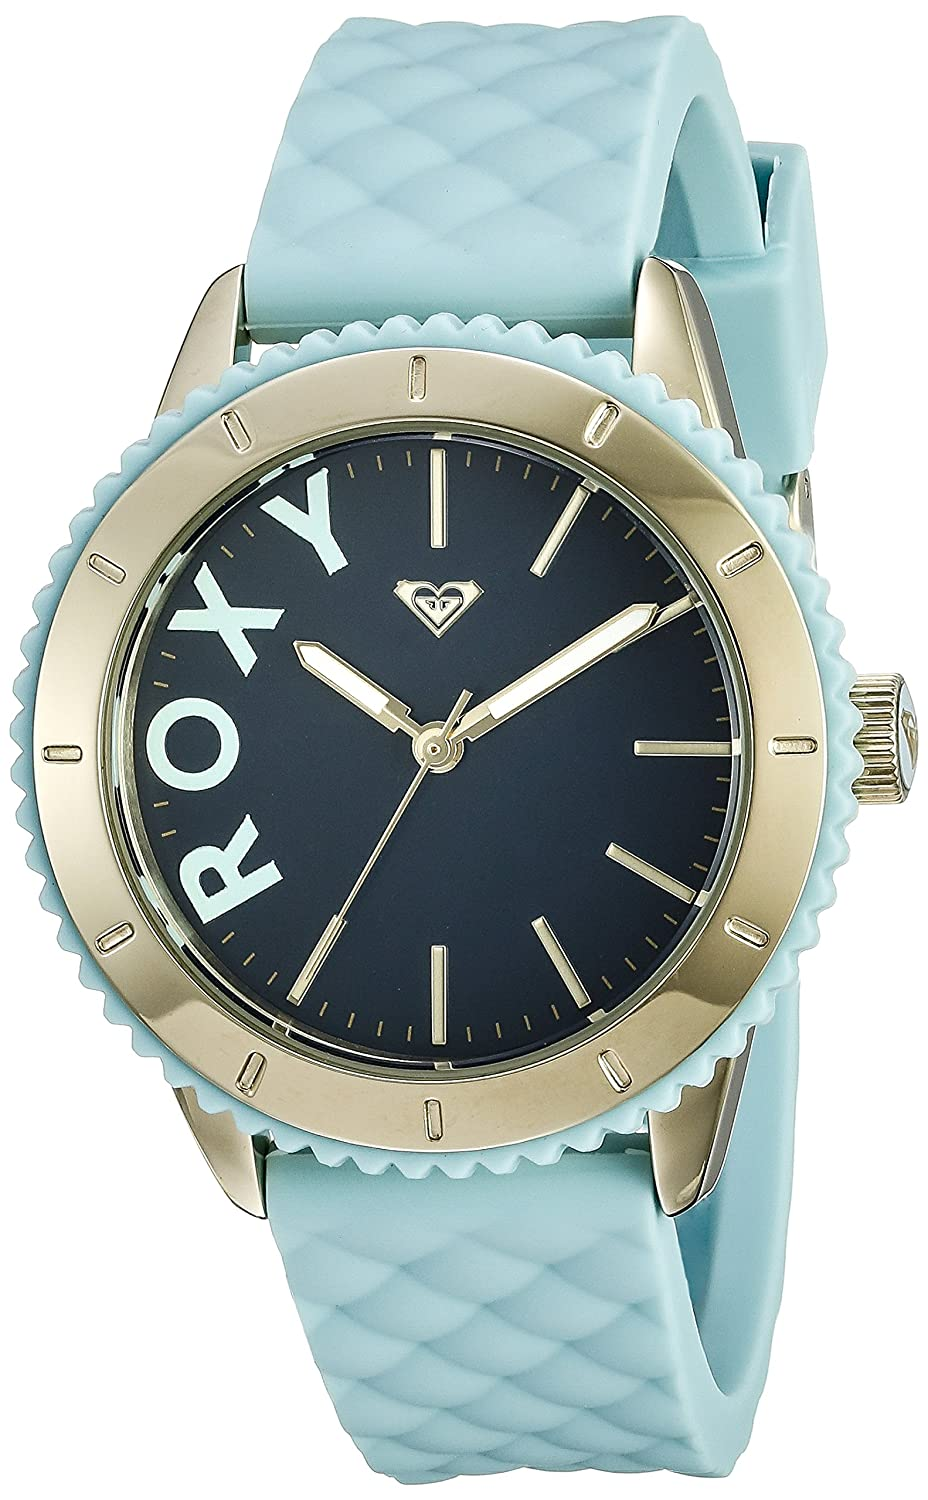 Roxy Damen-Armbanduhr The Del Mar Analog Silikon Blau RX-1013DBGP